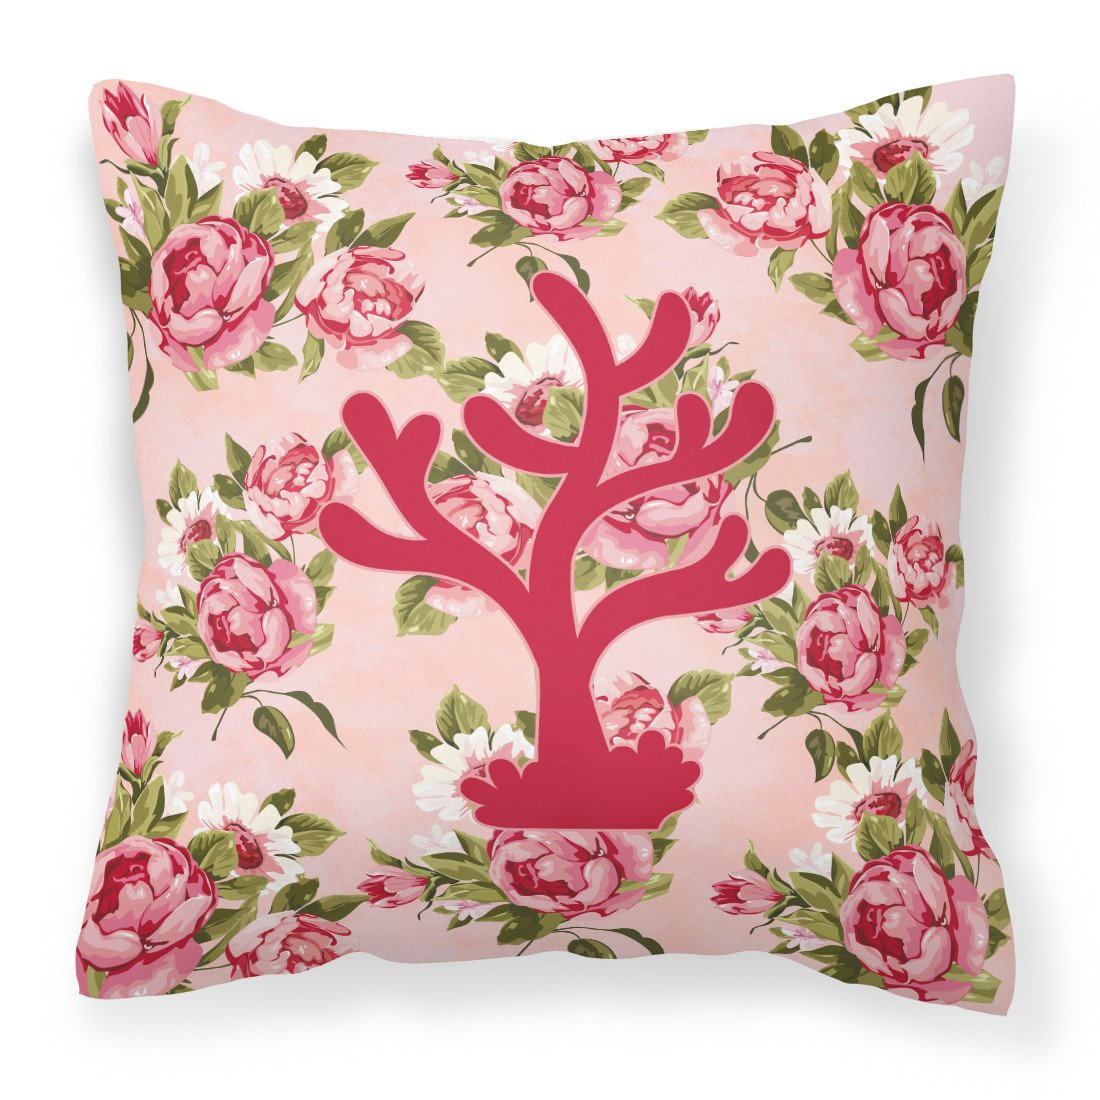 Coral Shabby Chic Pink Roses  Fabric Decorative Pillow BB1101-RS-PK-PW1414 - the-store.com